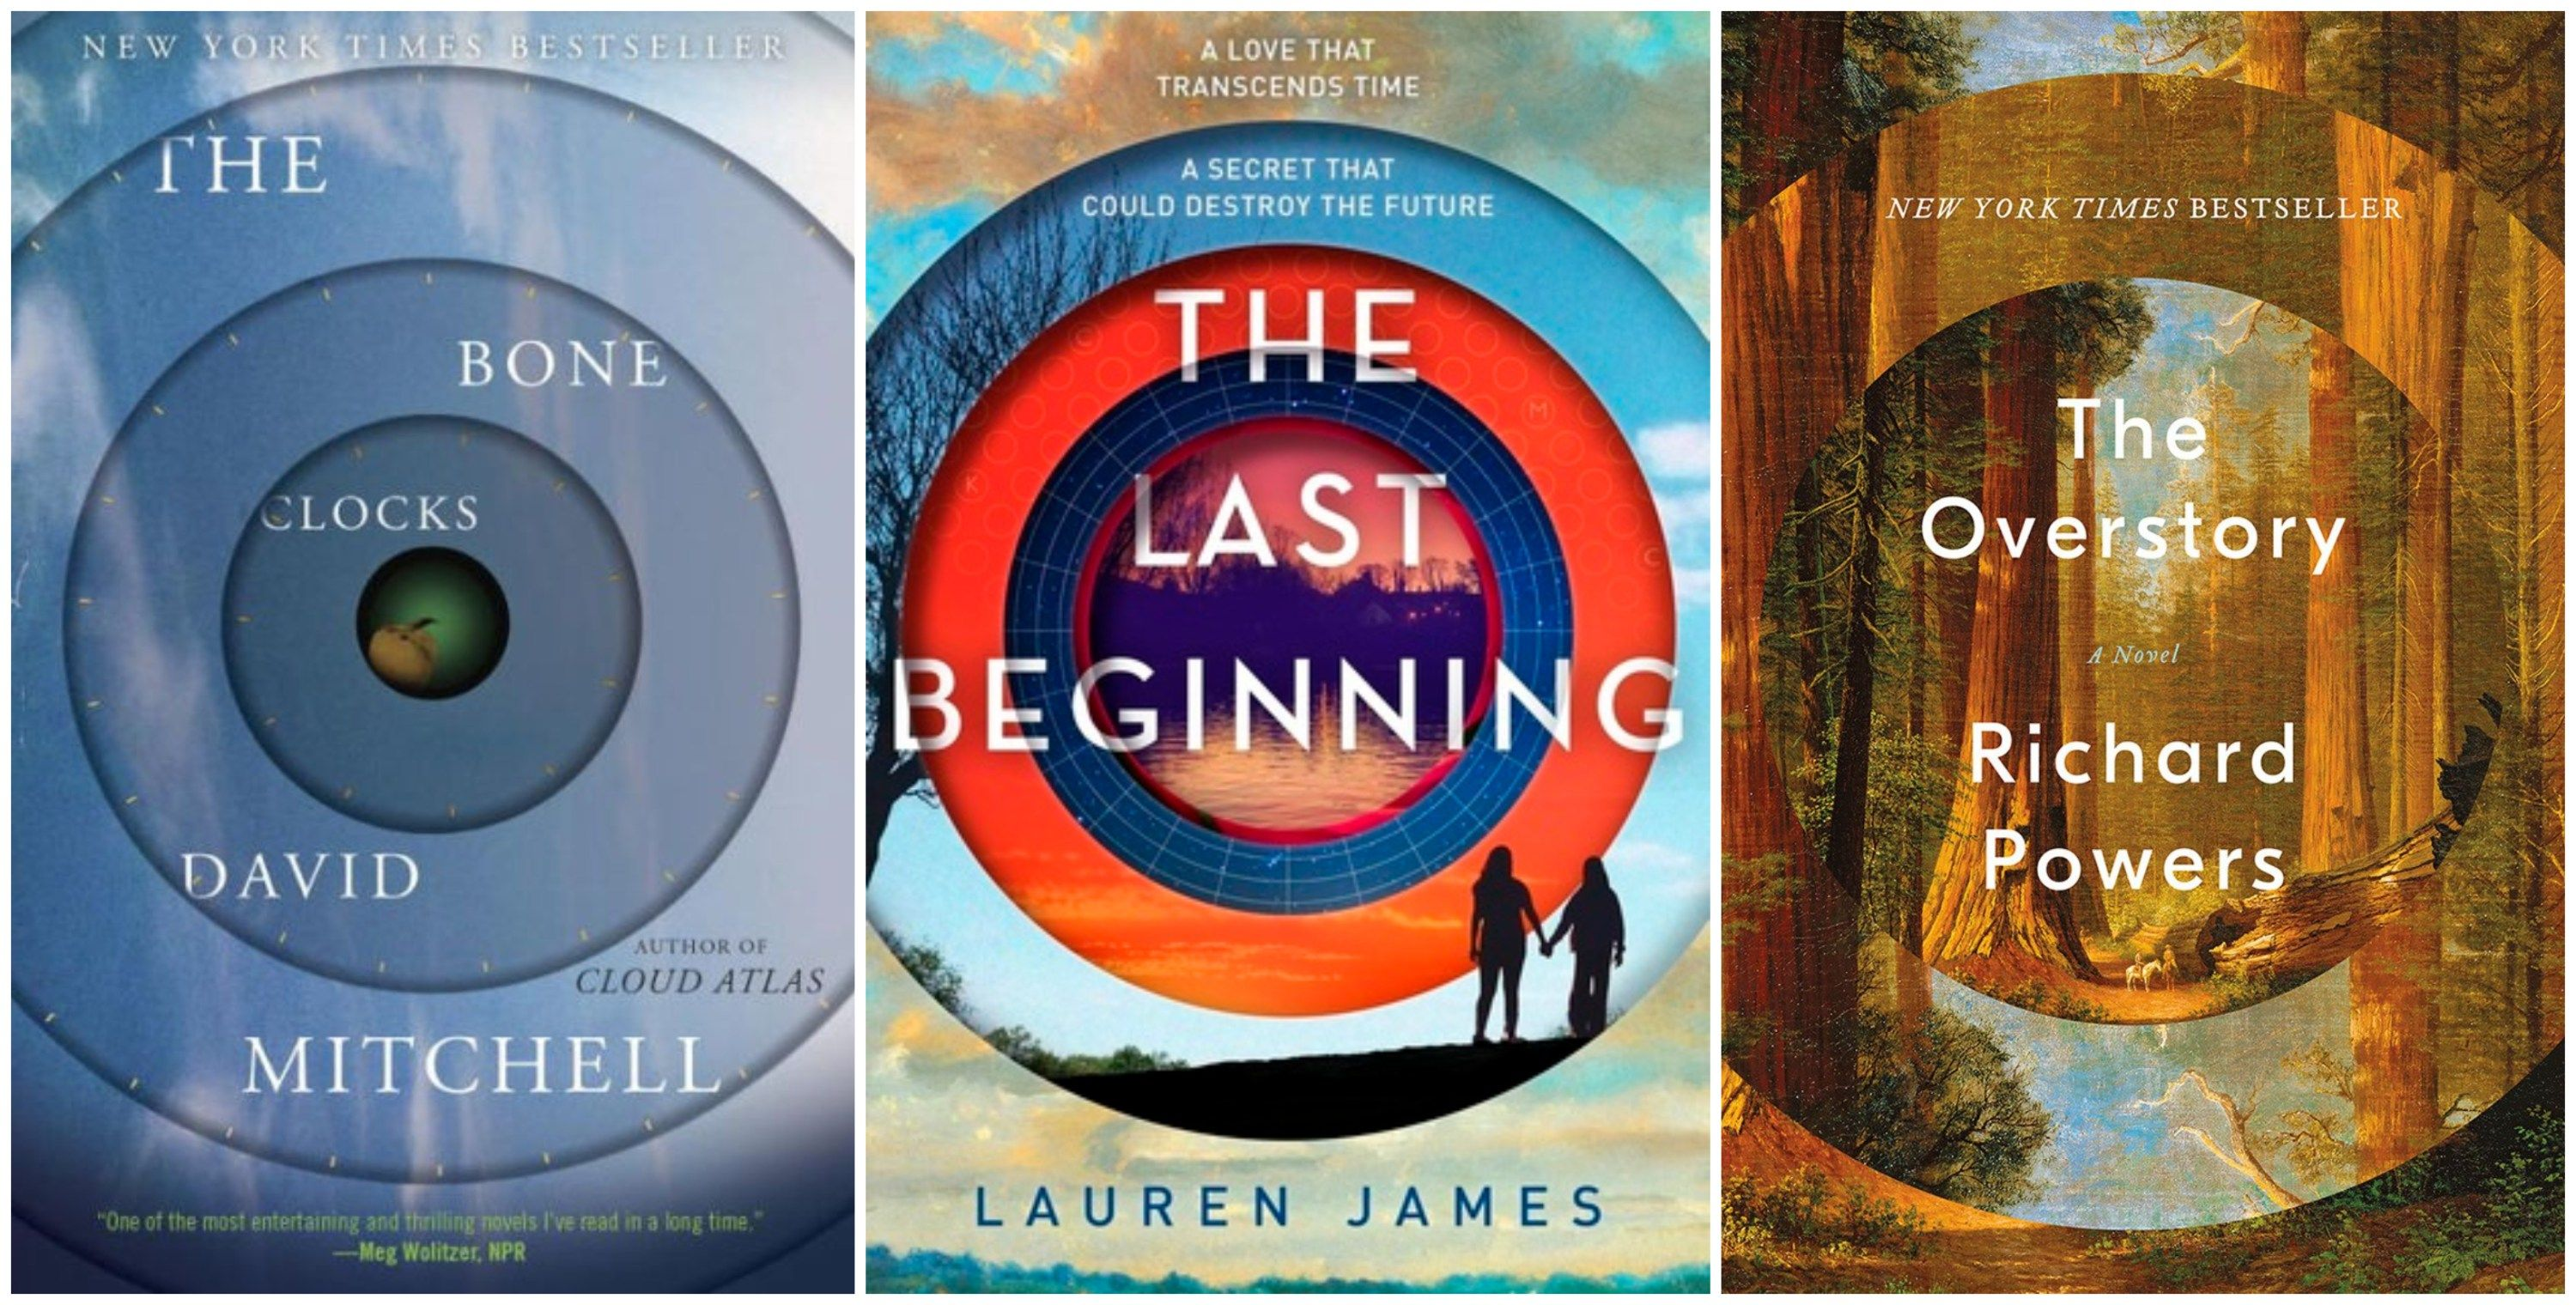 Cover Trend Alert: Hypnotic Circles The Bone Clocks by David Mitchell; The  Last Beginning, by Lauren James; The Overstory, by Richard Powers